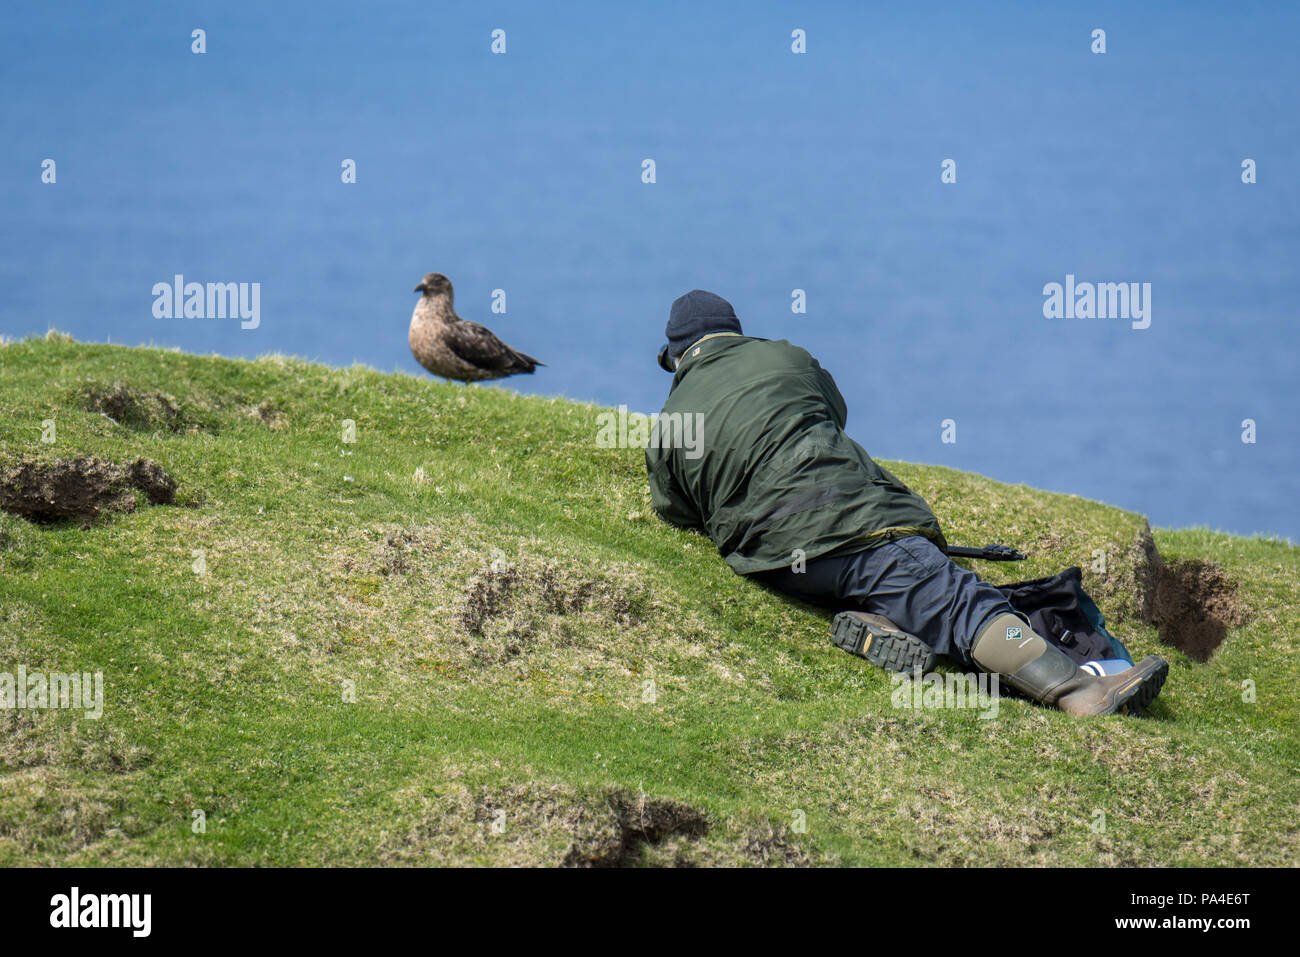 Birder / wildlife photographer taking pictures of great skua (Stercorarius skua) on clifftop at Hermaness, Unst, Shetland Islands, Scotland, UK - Stock Image